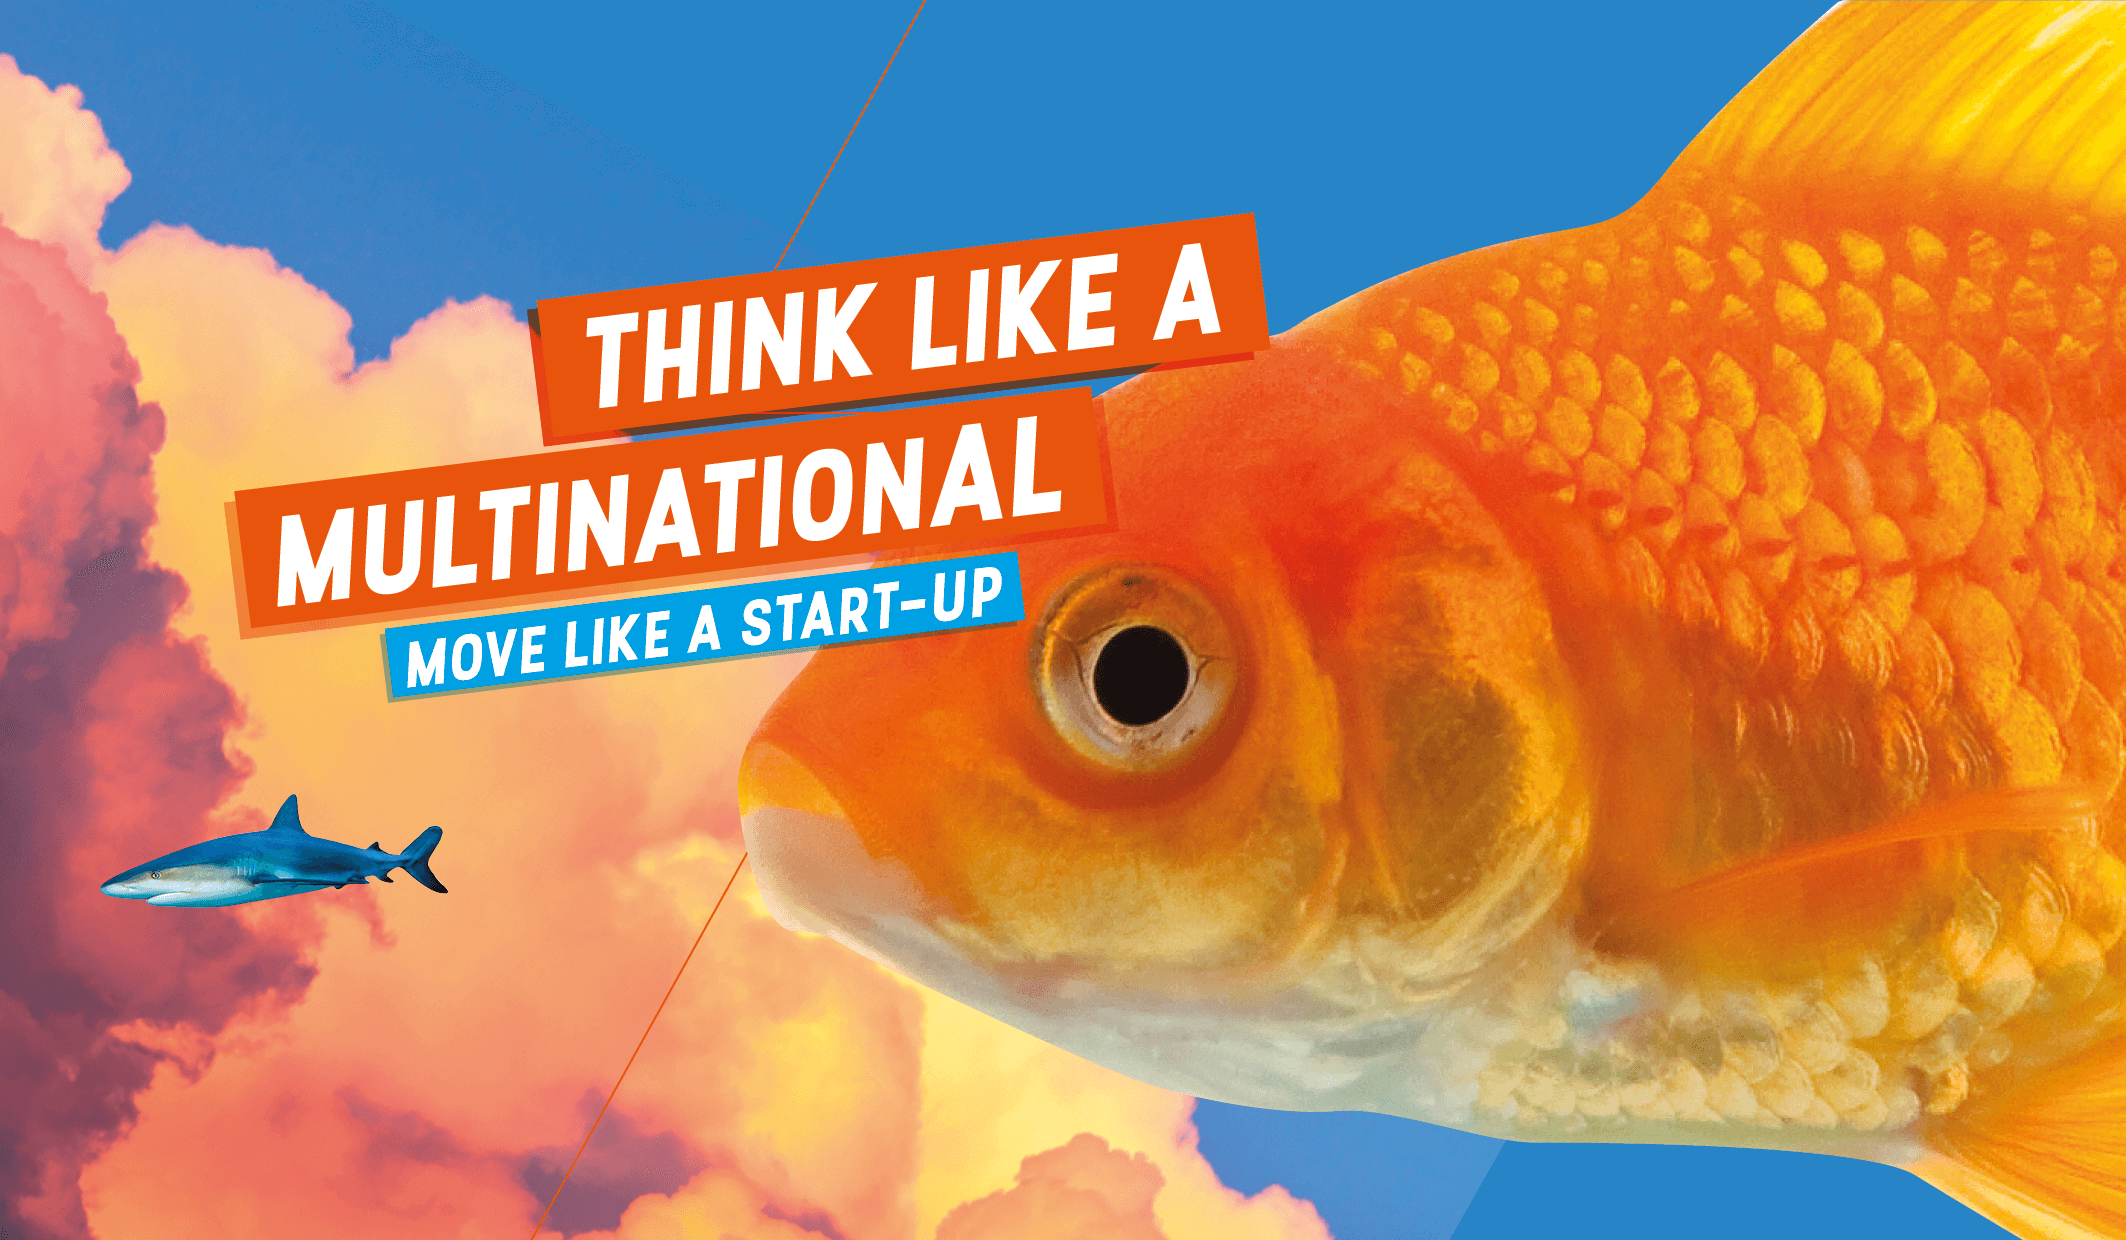 Think like a multinational - move like a start up